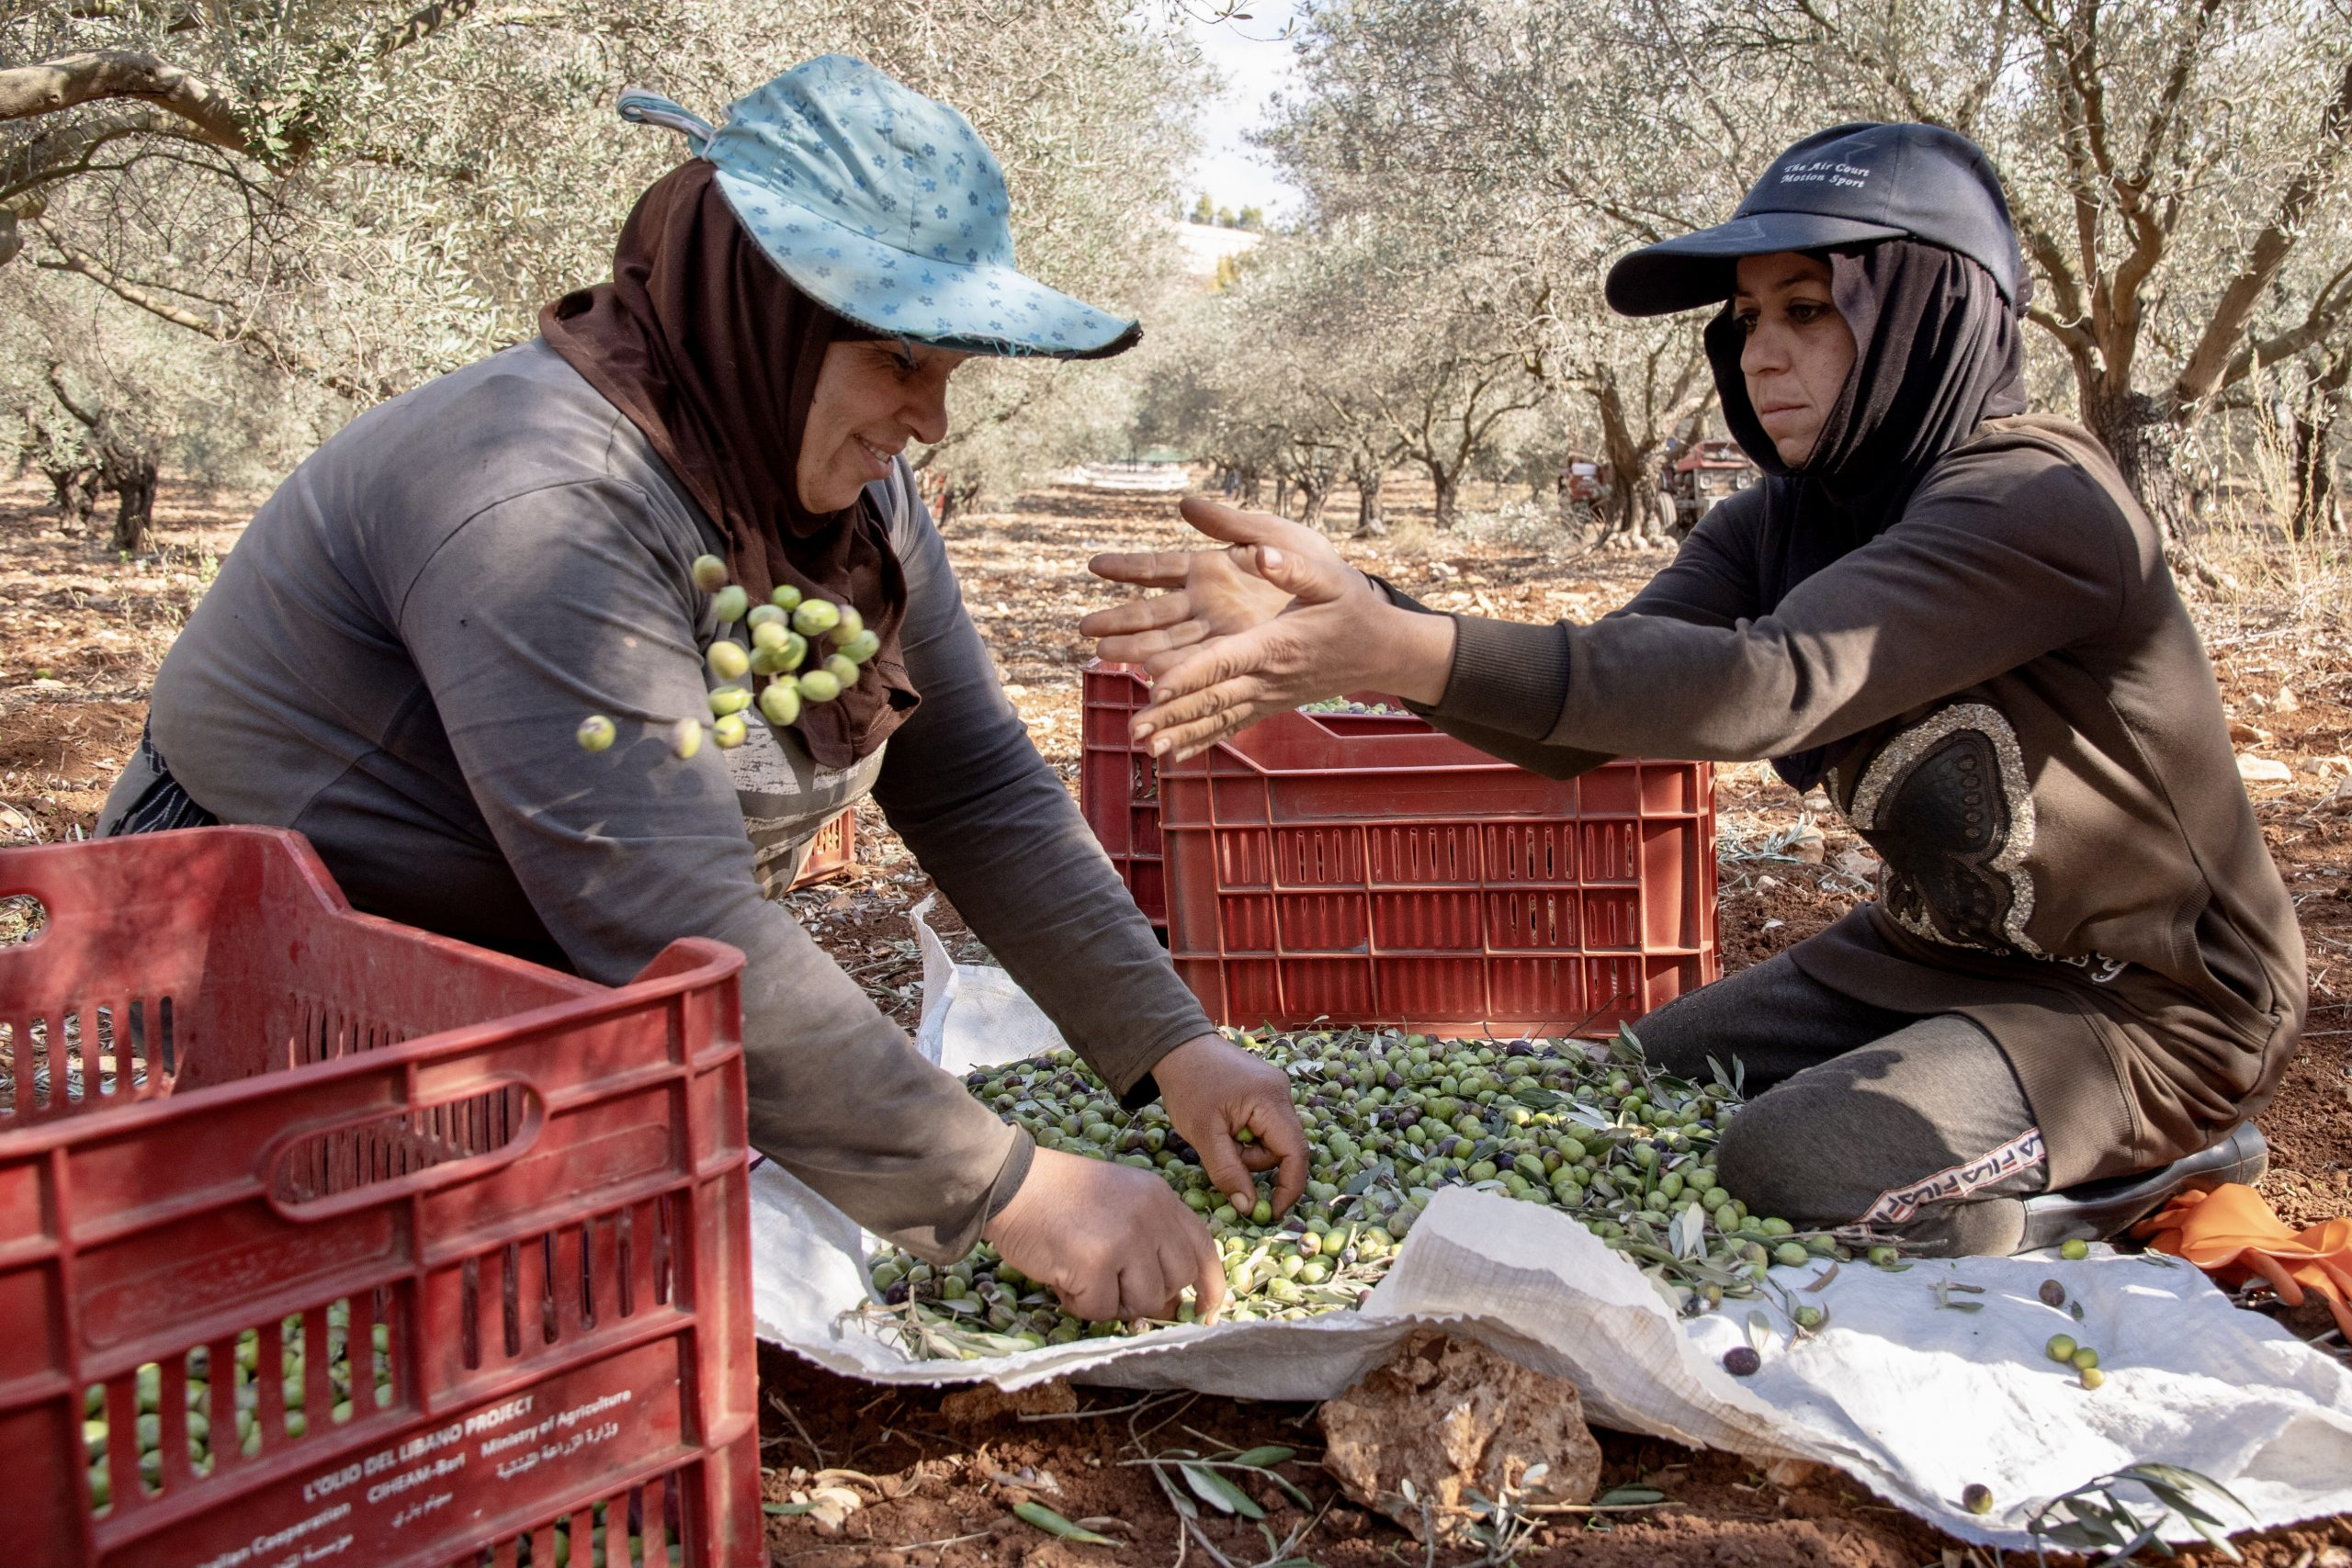 Women harvest pistachios in an orchard